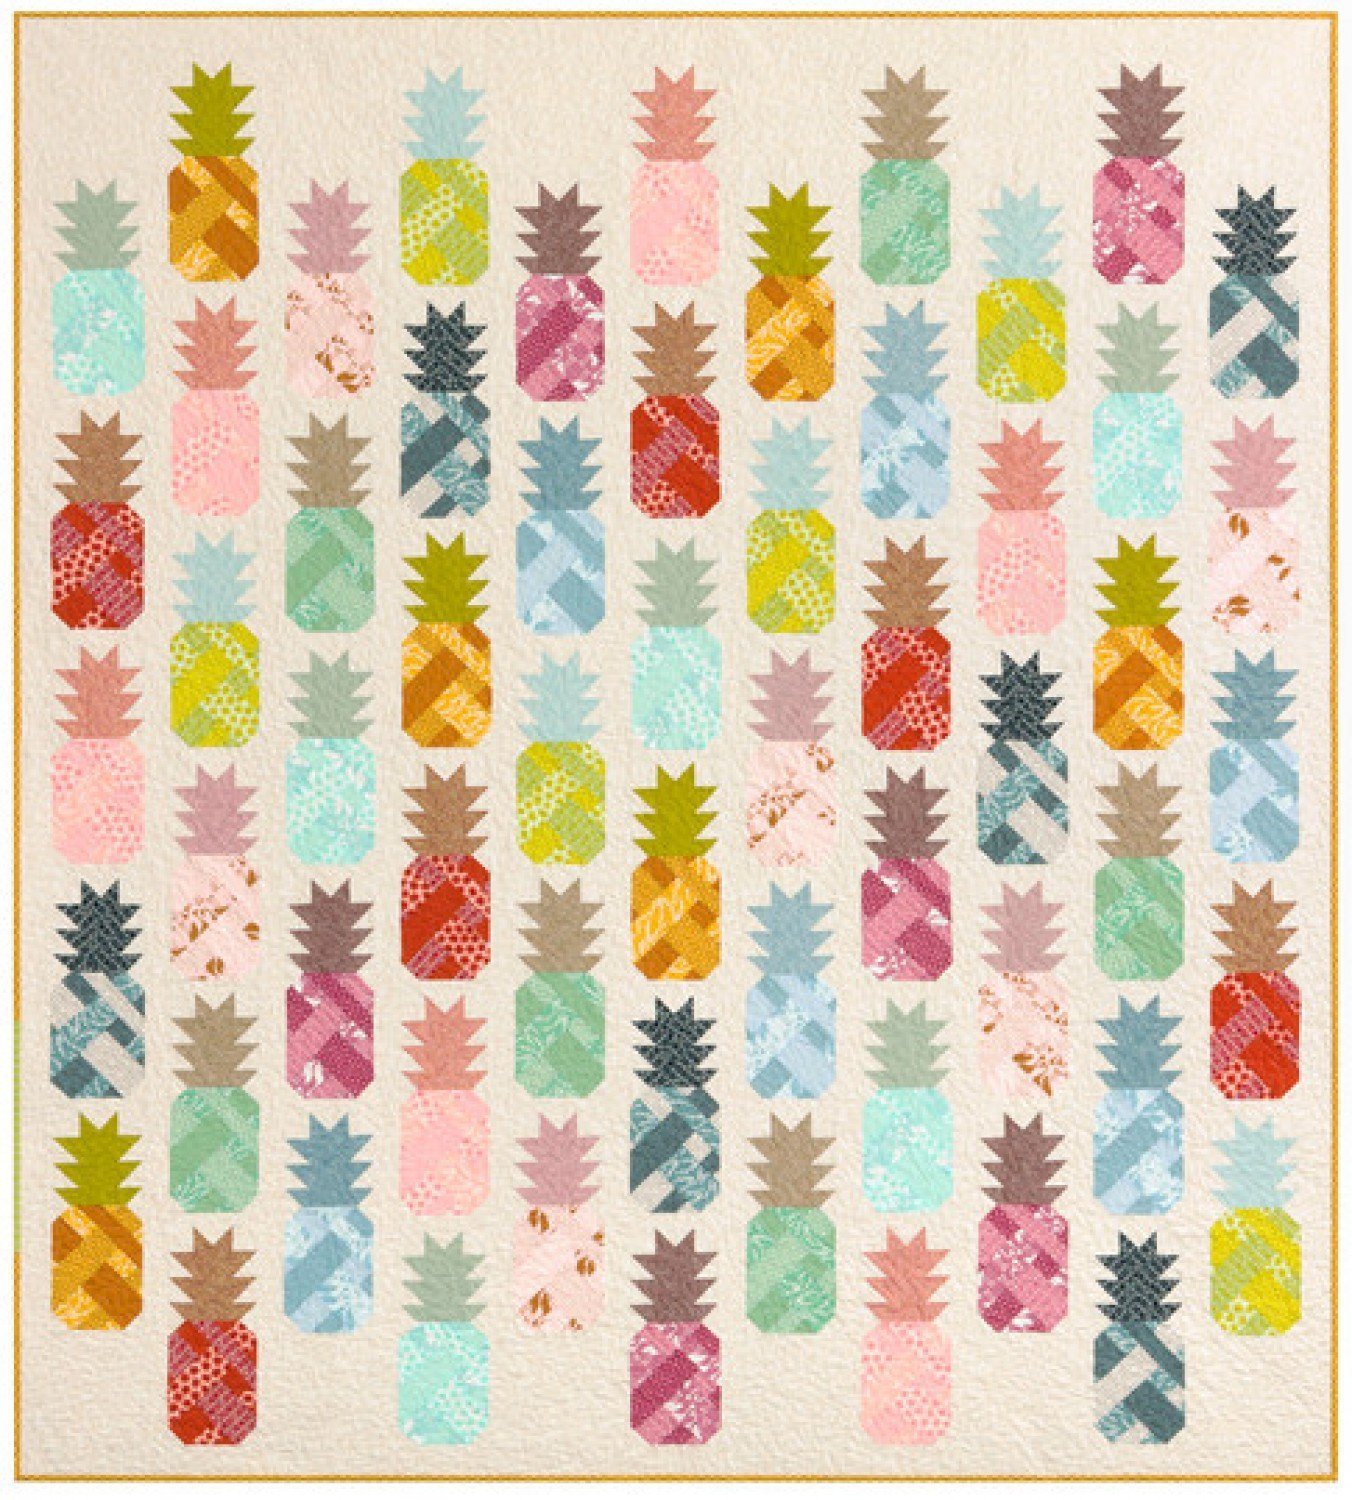 Quilt Backing -  Pineapple Farm Quilt